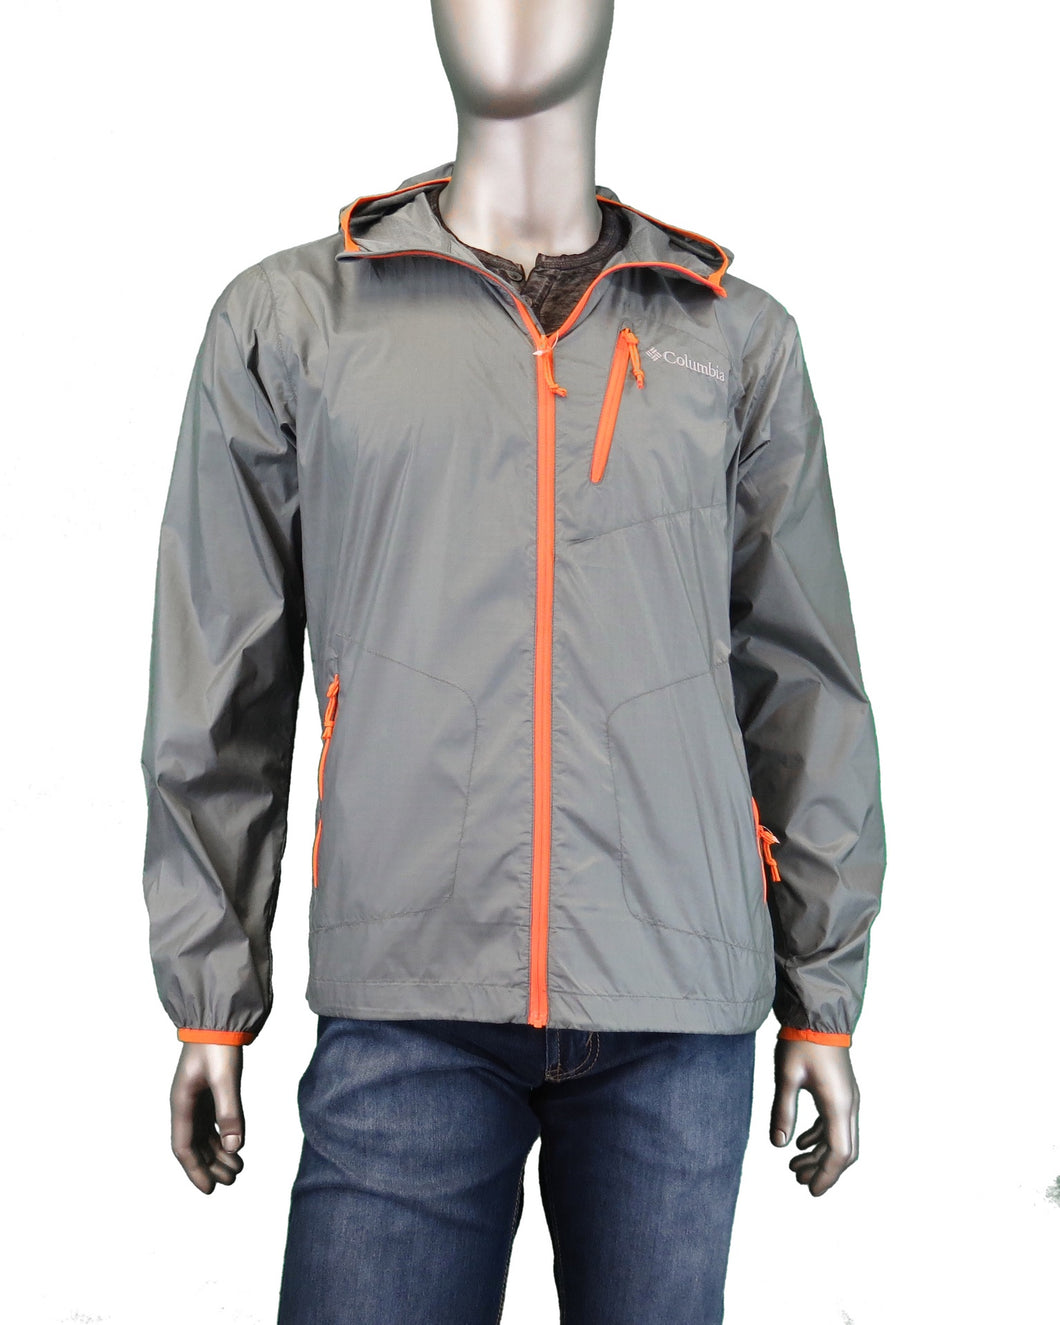 Columbia | WM2169-941 | Trail Drier Windbreaker Jacket | Green